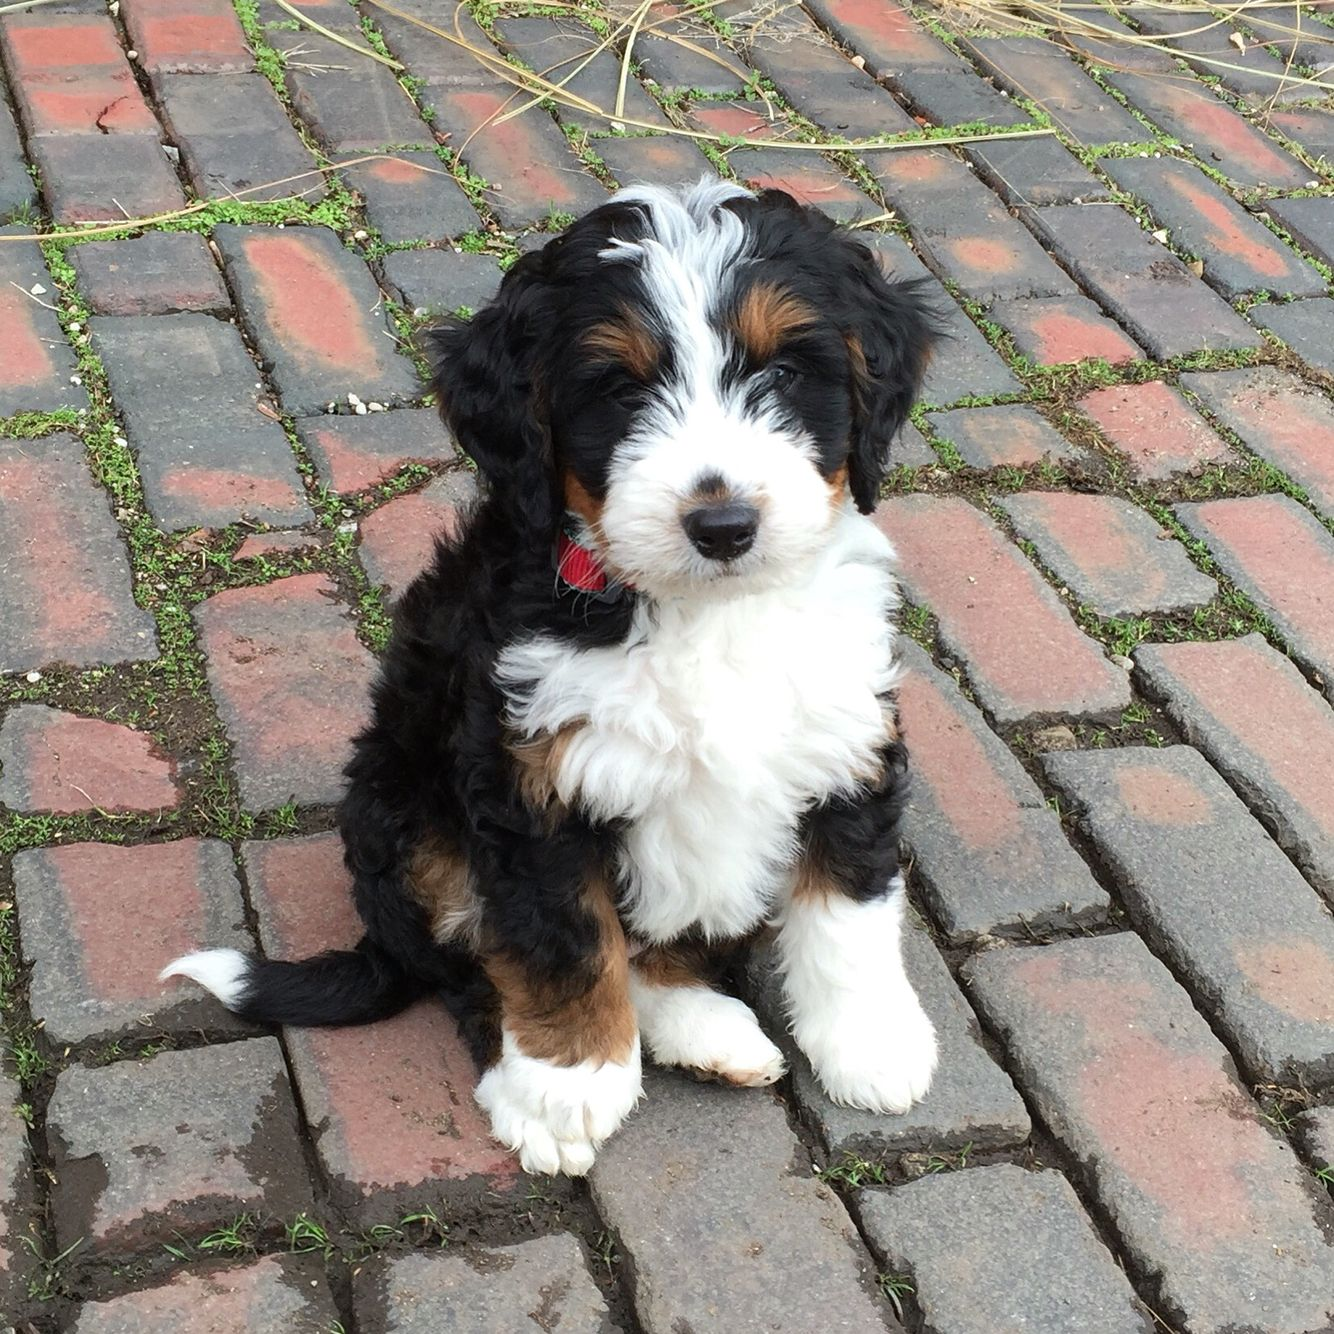 Bernedoodle Babe Bernedoodle Bernedoodlepuppy Cute Dogs Bernedoodle Puppy Cute Animals